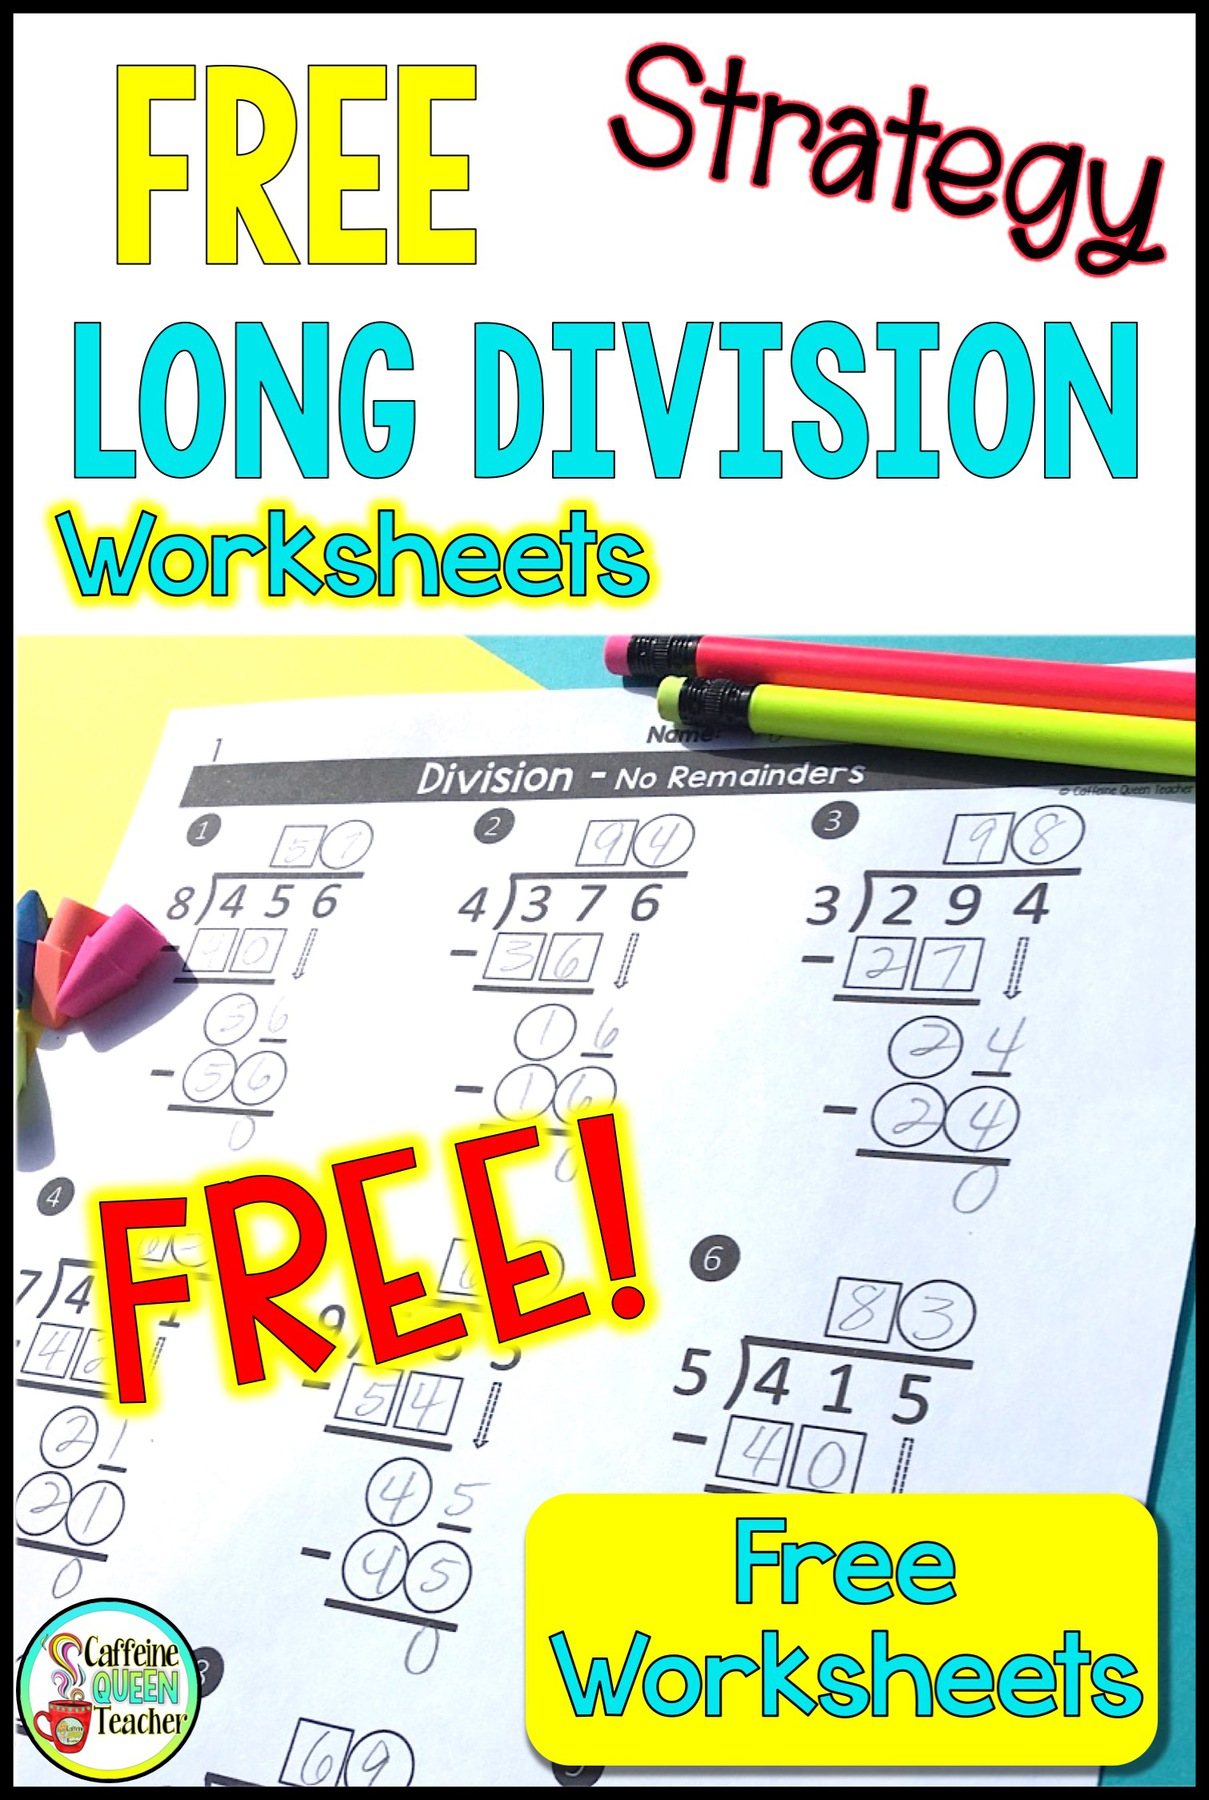 small resolution of Differentiated Long Division Worksheets for FREE - Caffeine Queen Teacher